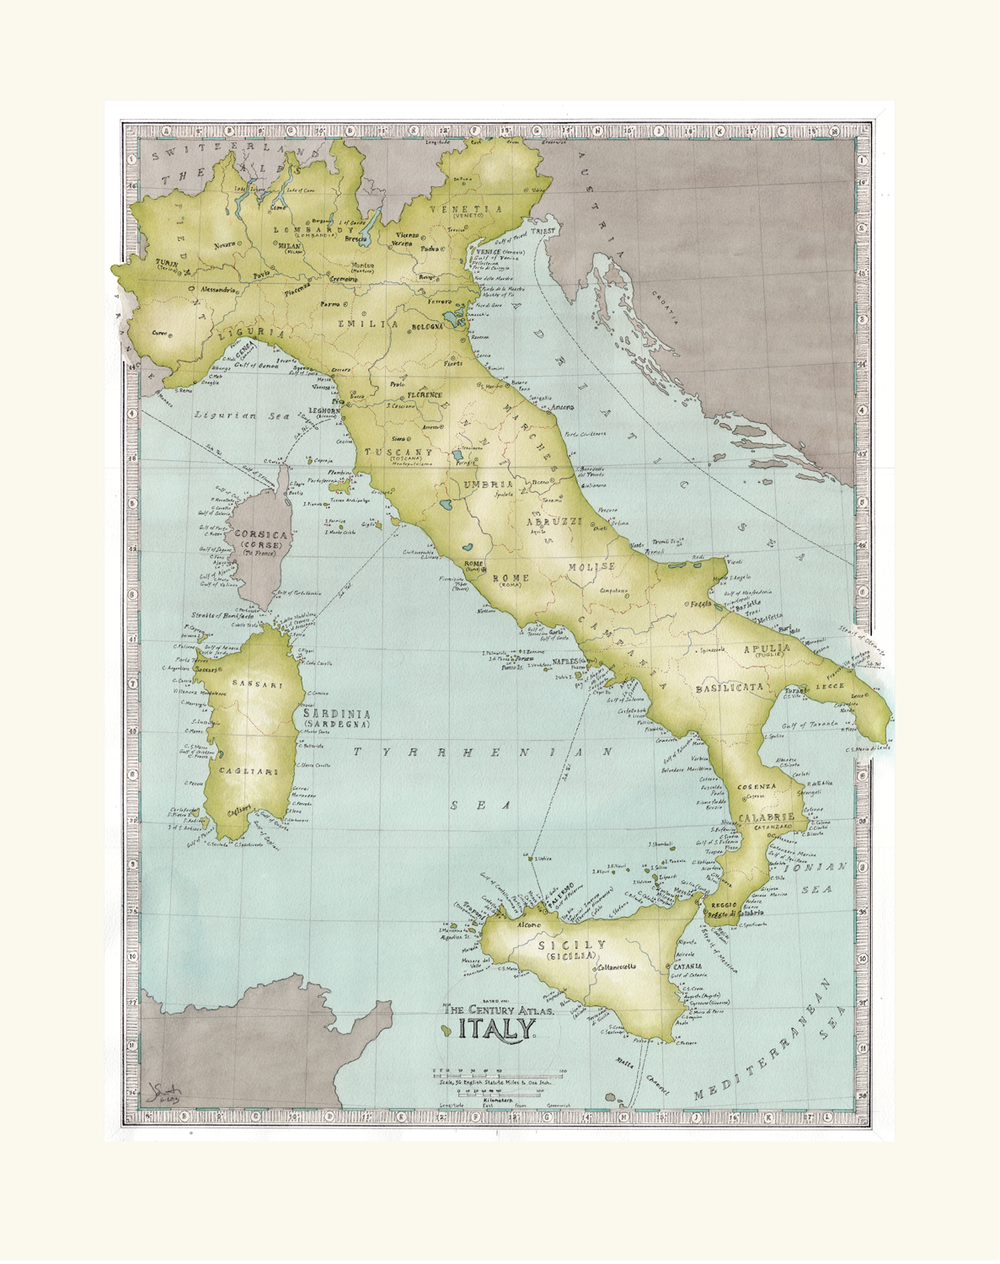 Mapitaly2.png